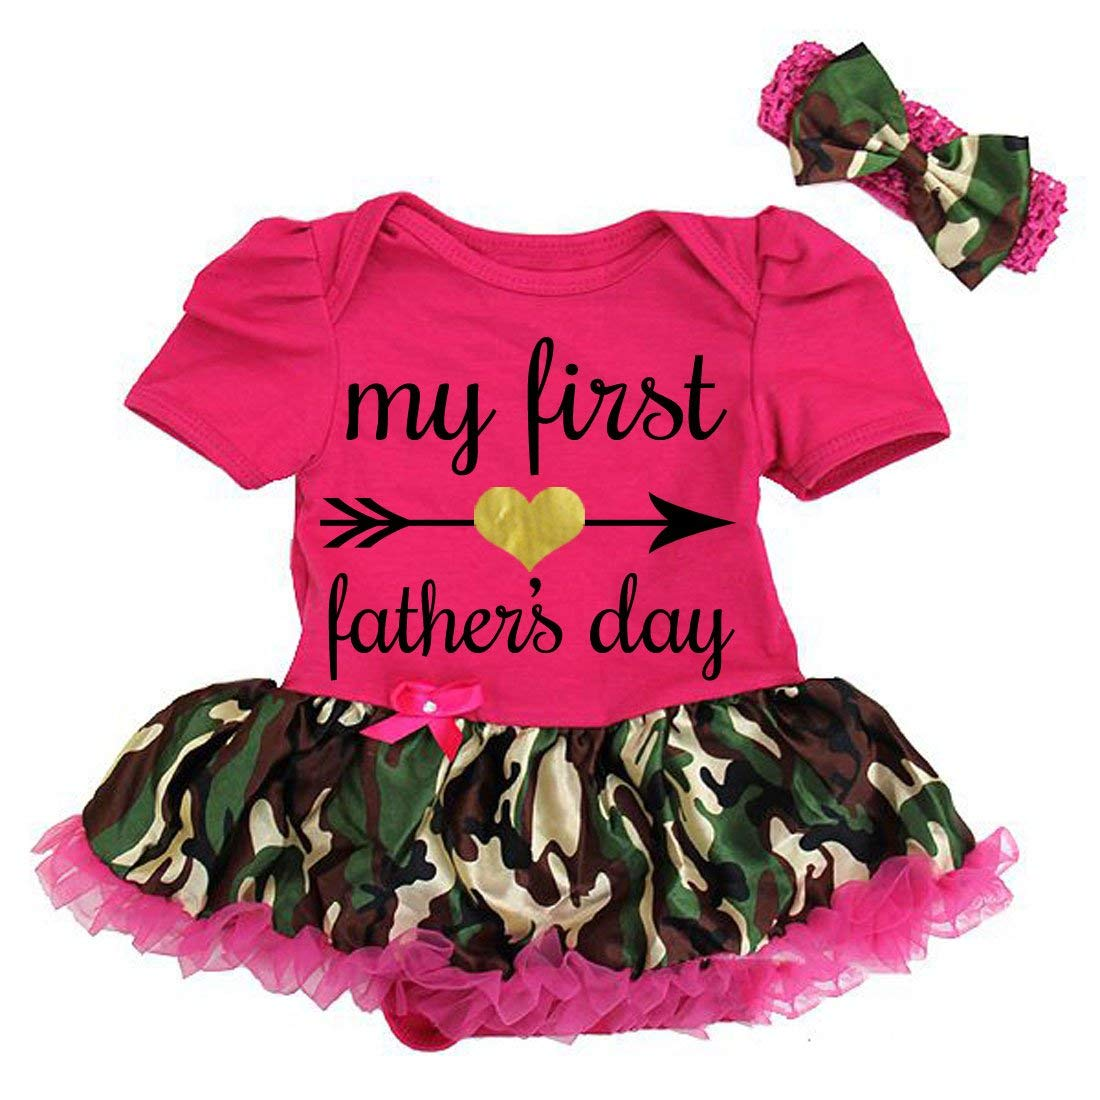 e59311f48ccb Get Quotations · G G - Cute Funny Baby Girl My First Father s Day Tutu Dress  Outfits Pink Camo